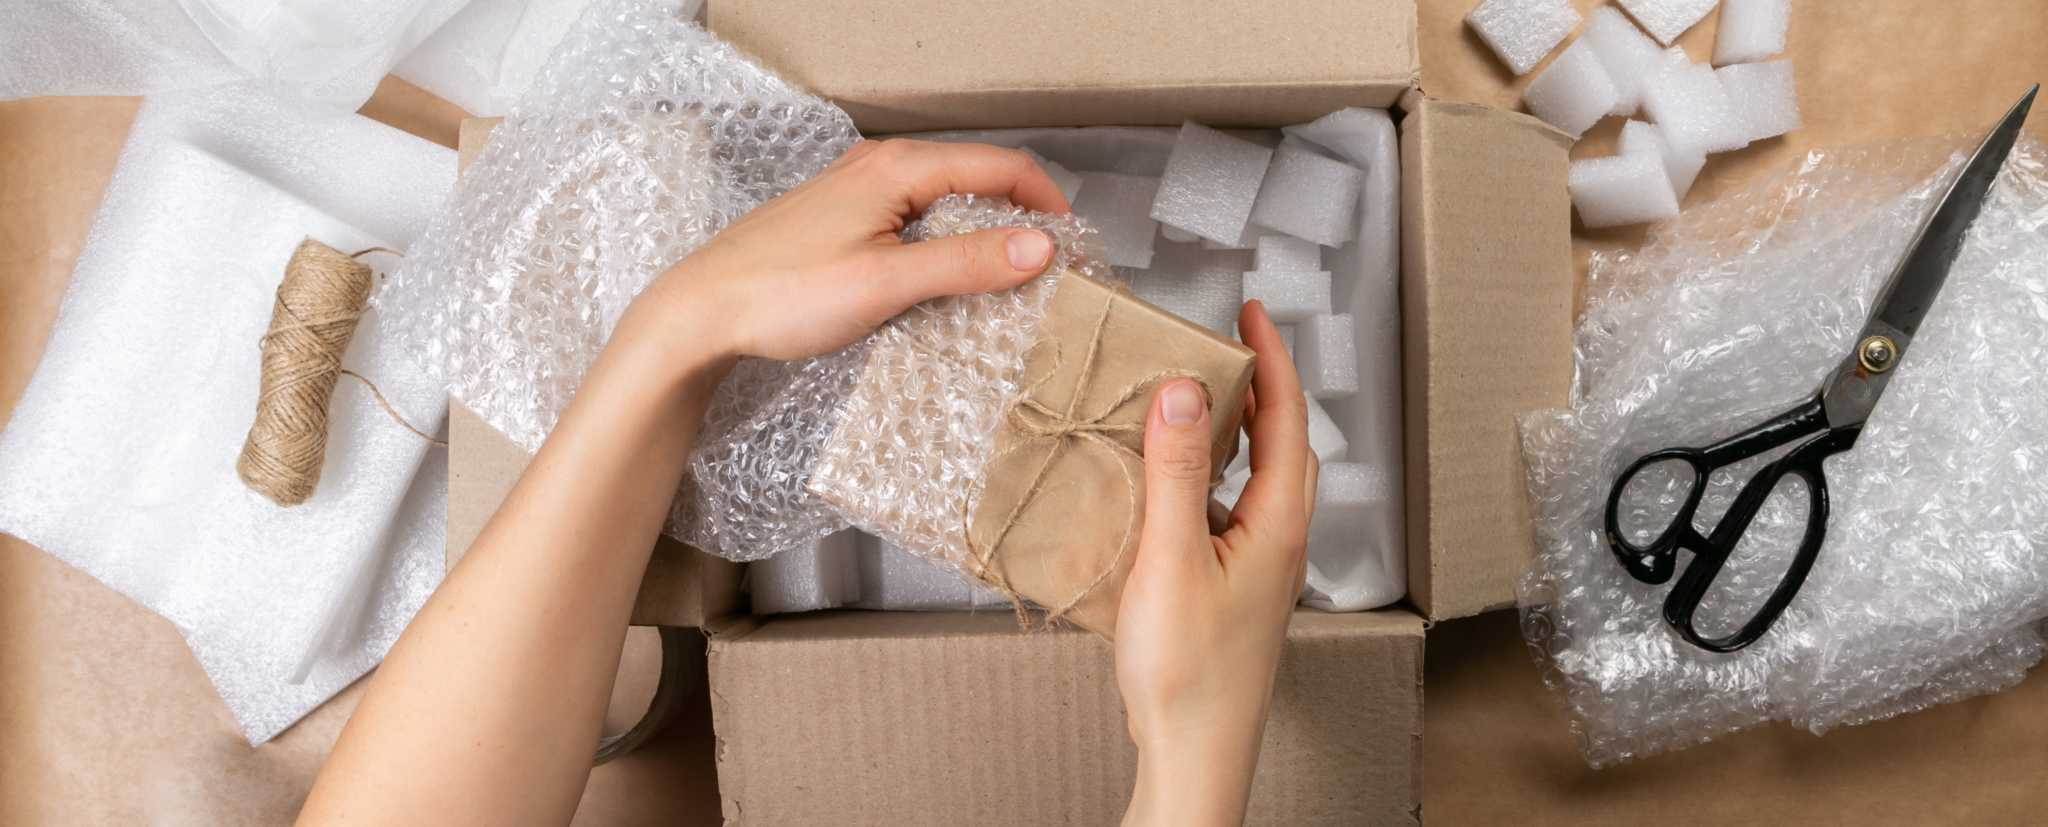 Packing products for delivery, shipping service